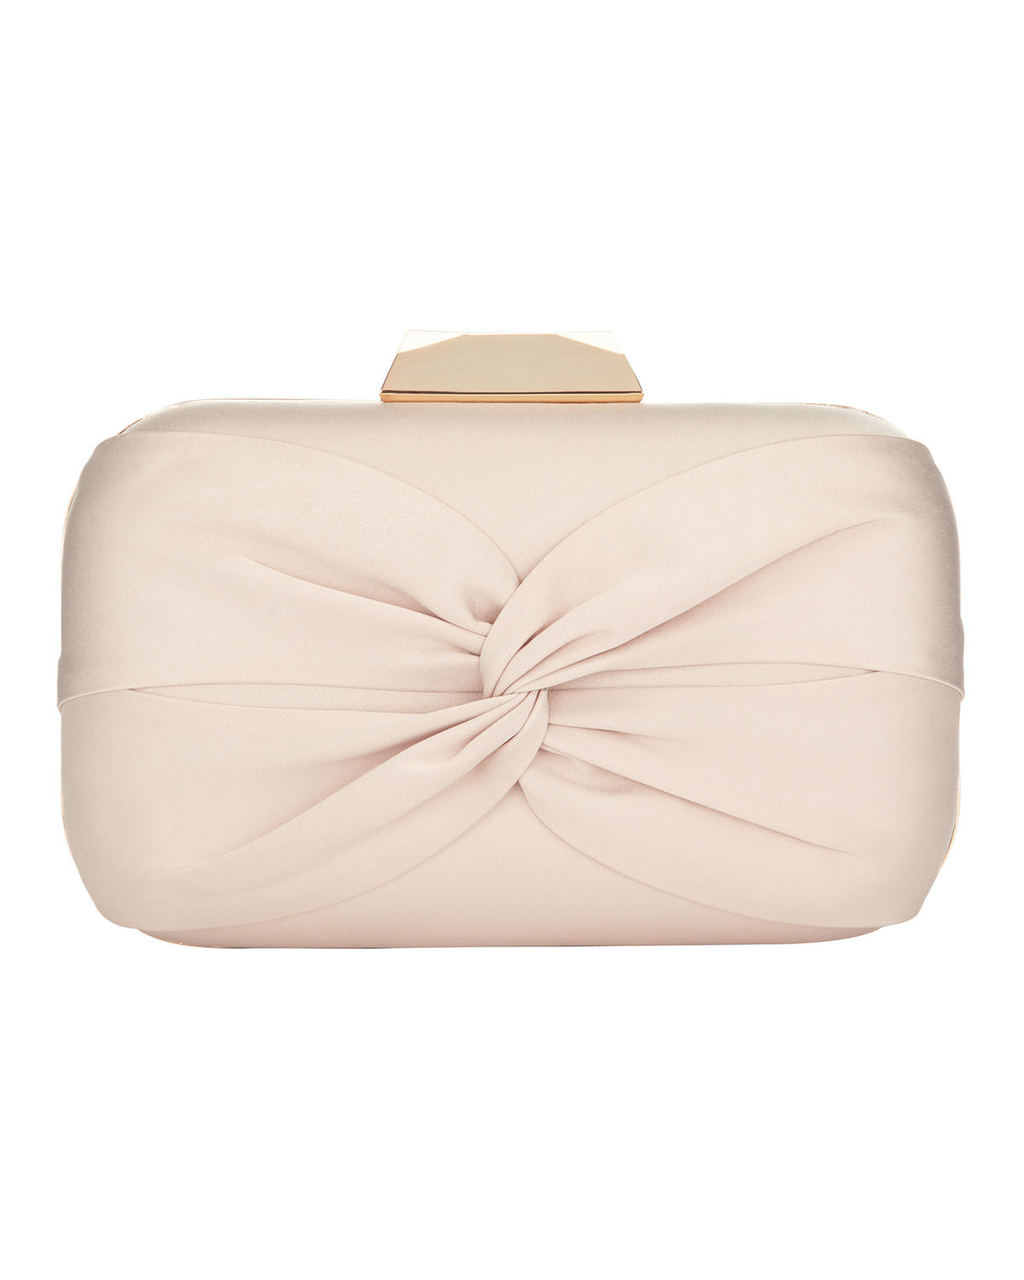 Gina Satin Clutch - predominant colour: blush; occasions: occasion; type of pattern: standard; style: clutch; length: hand carry; size: mini; material: satin; pattern: plain; finish: plain; season: s/s 2016; wardrobe: event